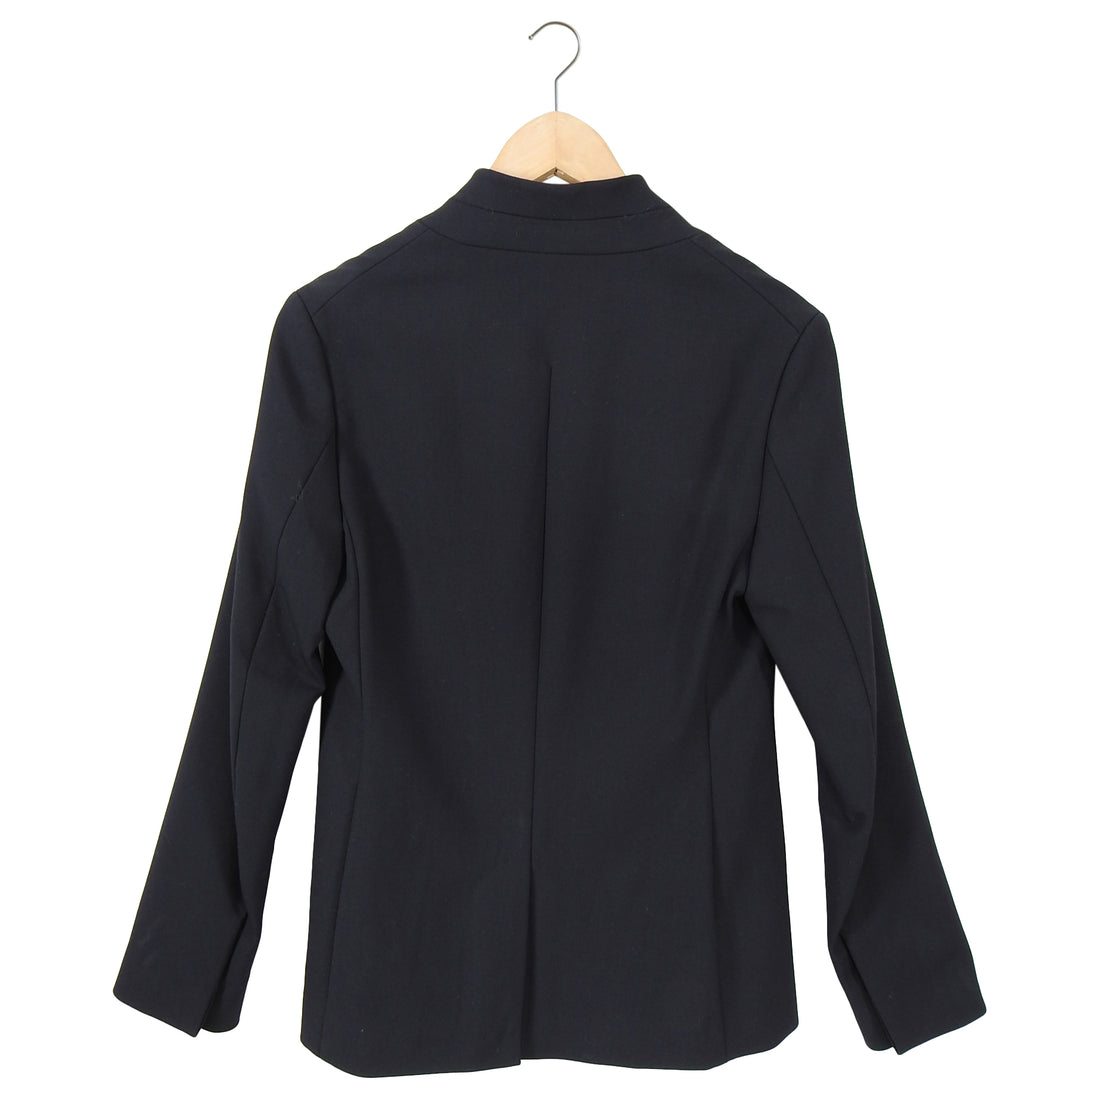 Phillip Lim Black Minimal Fitted Zip Front Jacket Blazer - 6